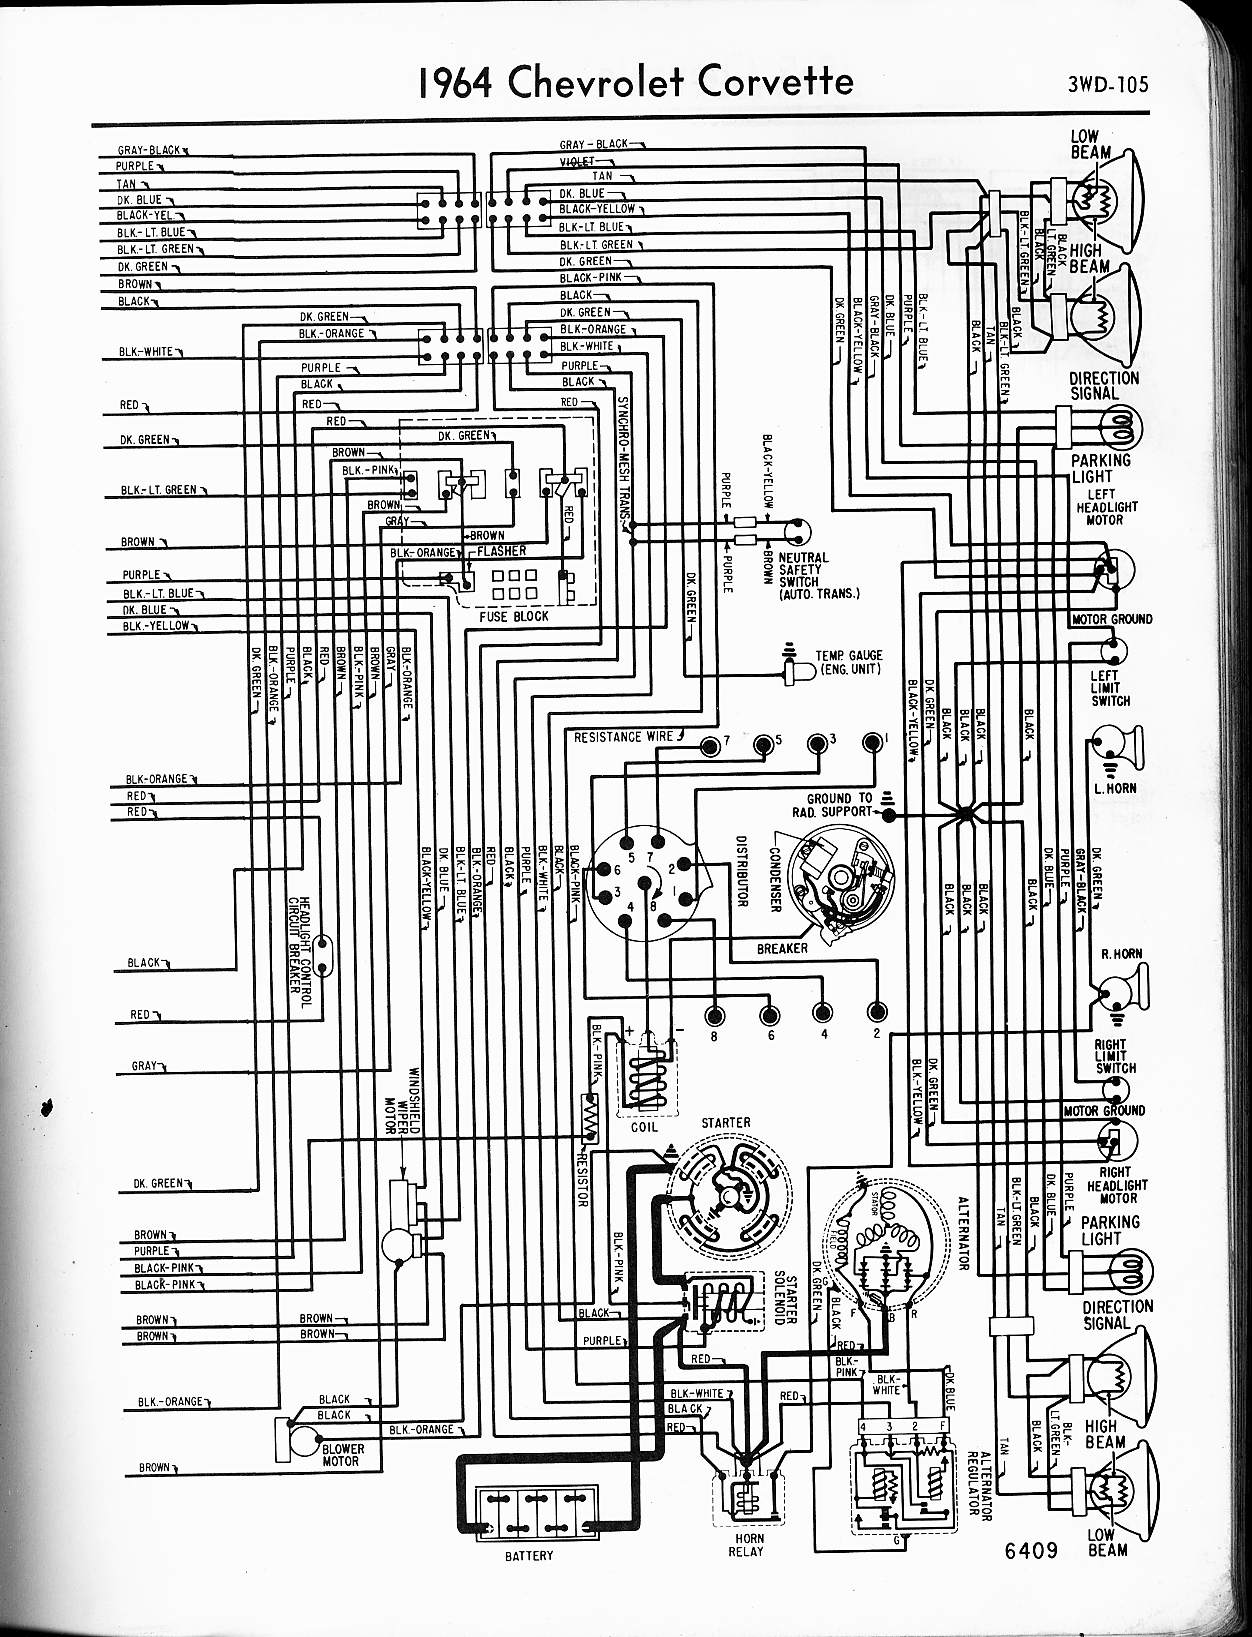 MWireChev64_3WD 105 1964 impala wiring diagram efcaviation com 1964 corvair wiring diagram at love-stories.co